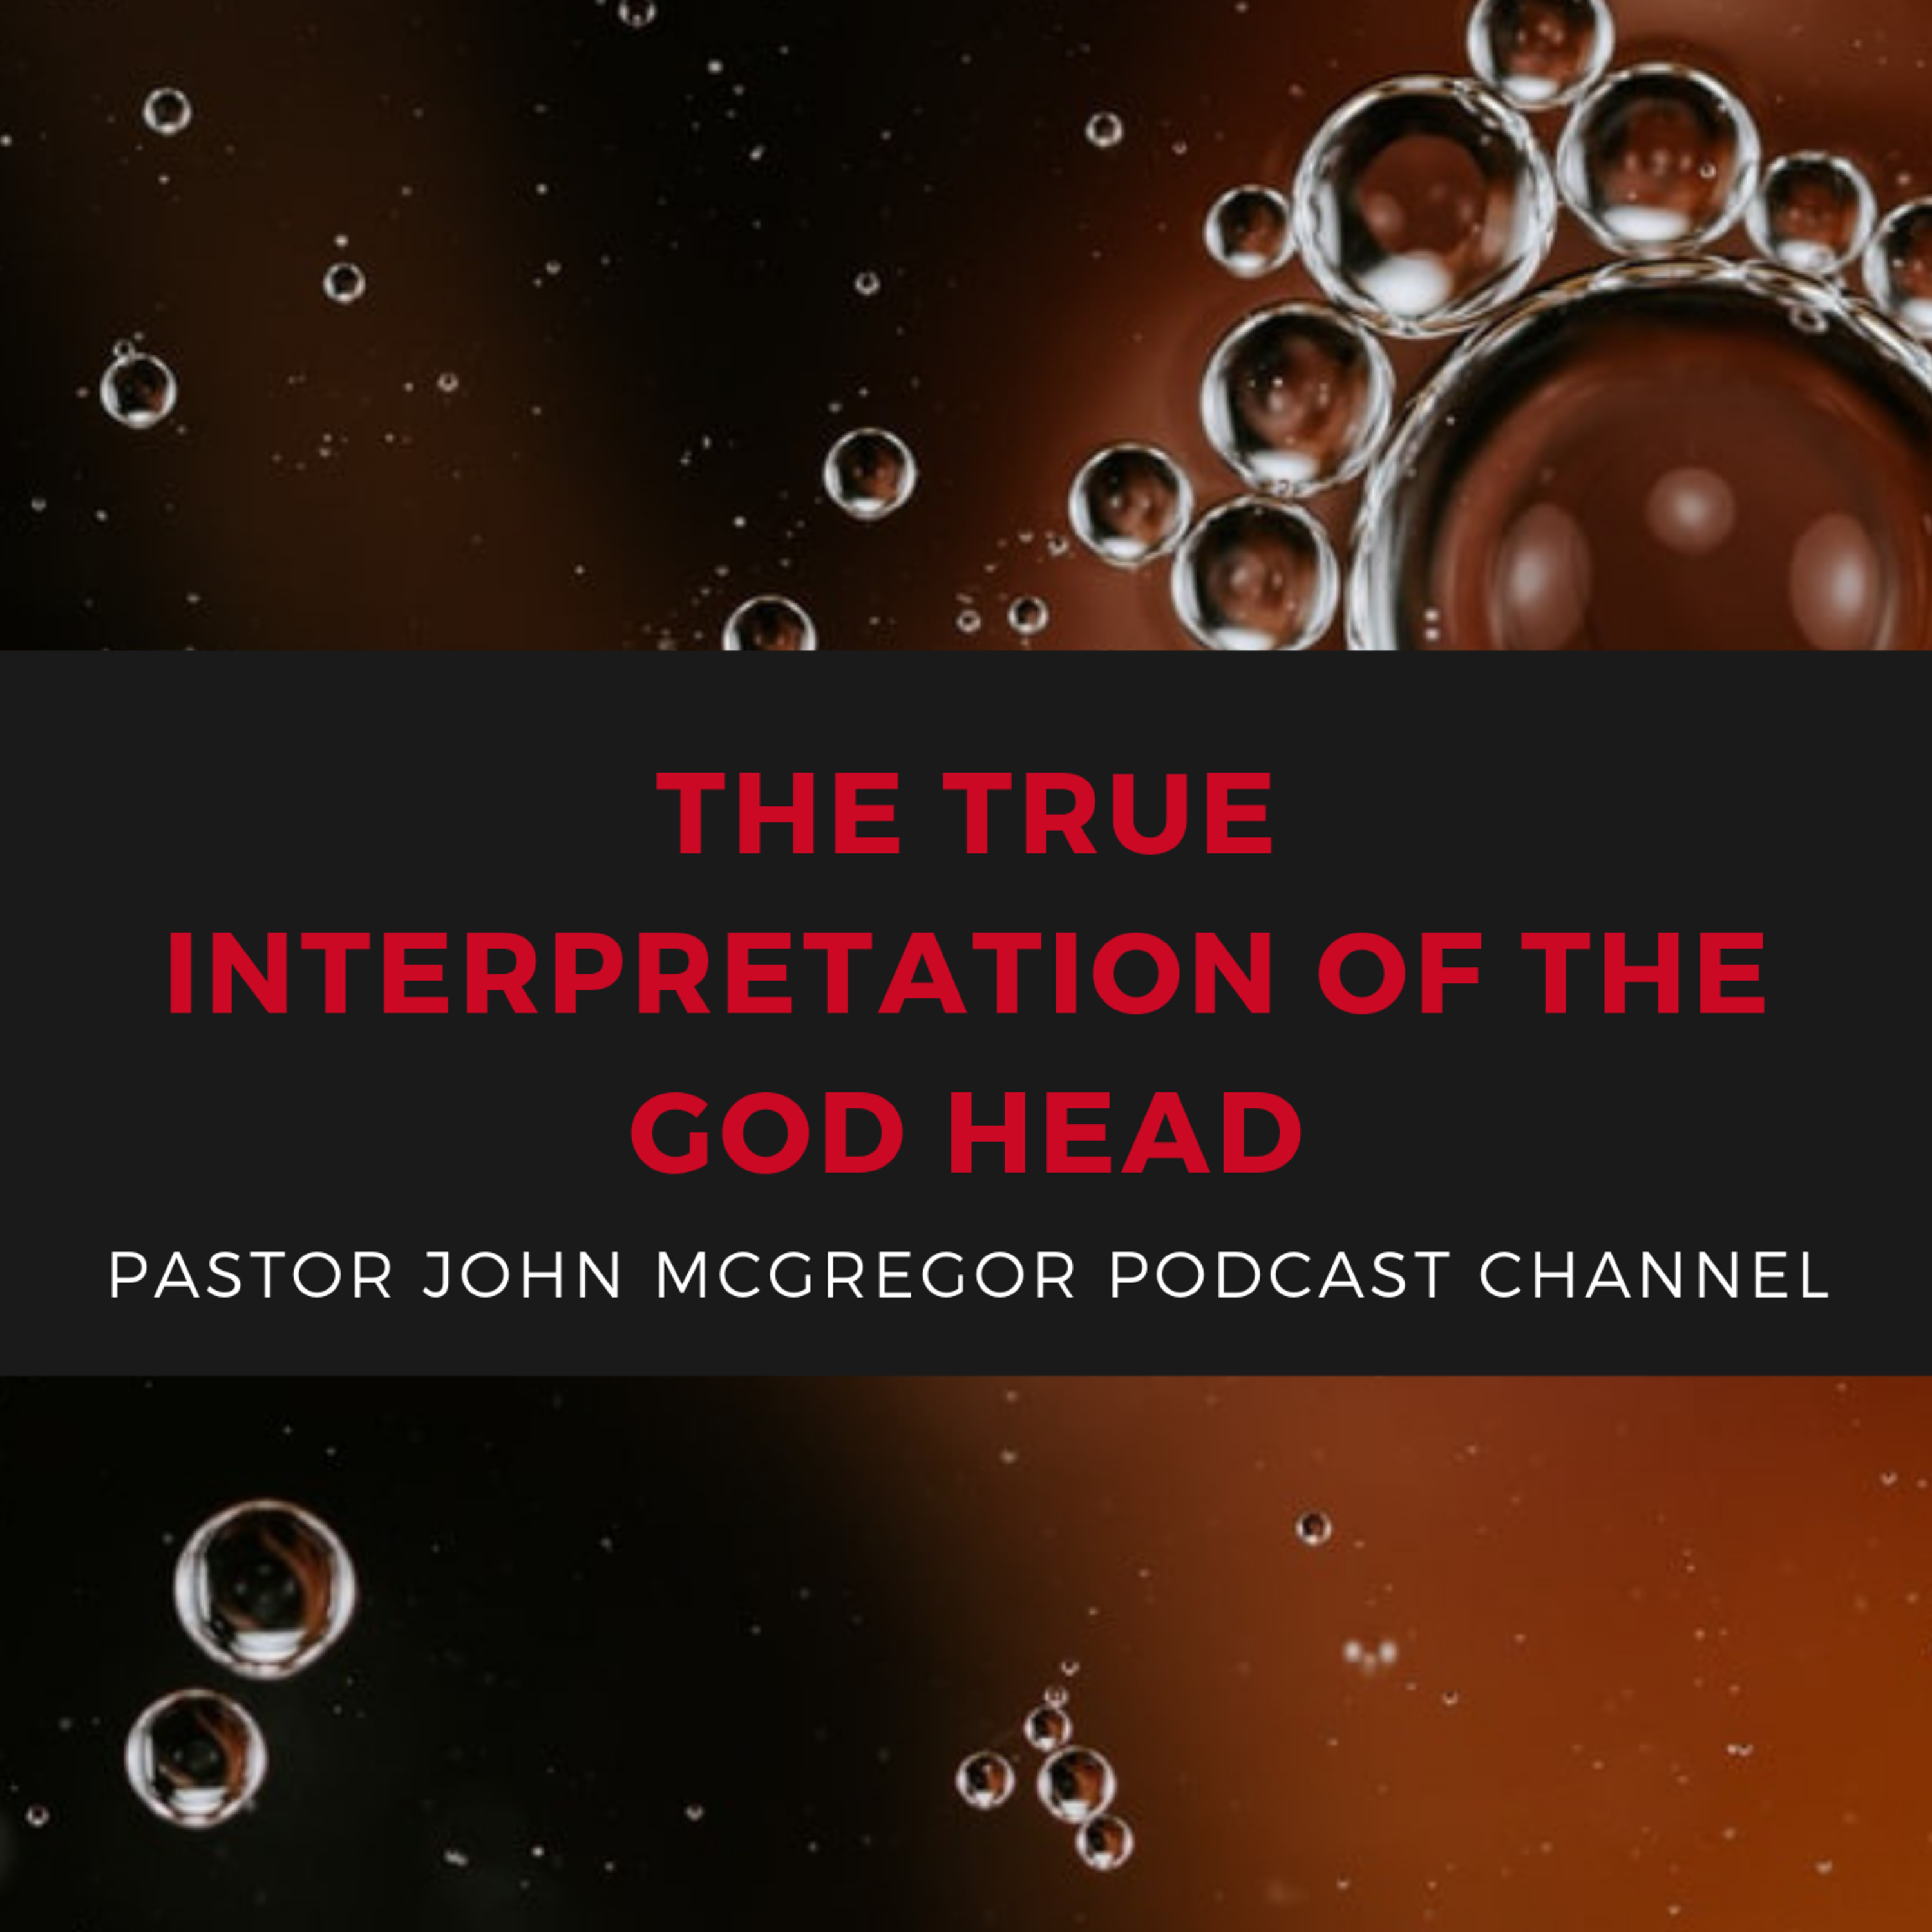 Pastor John McGregor Podcast Channel | Listen Free on Castbox